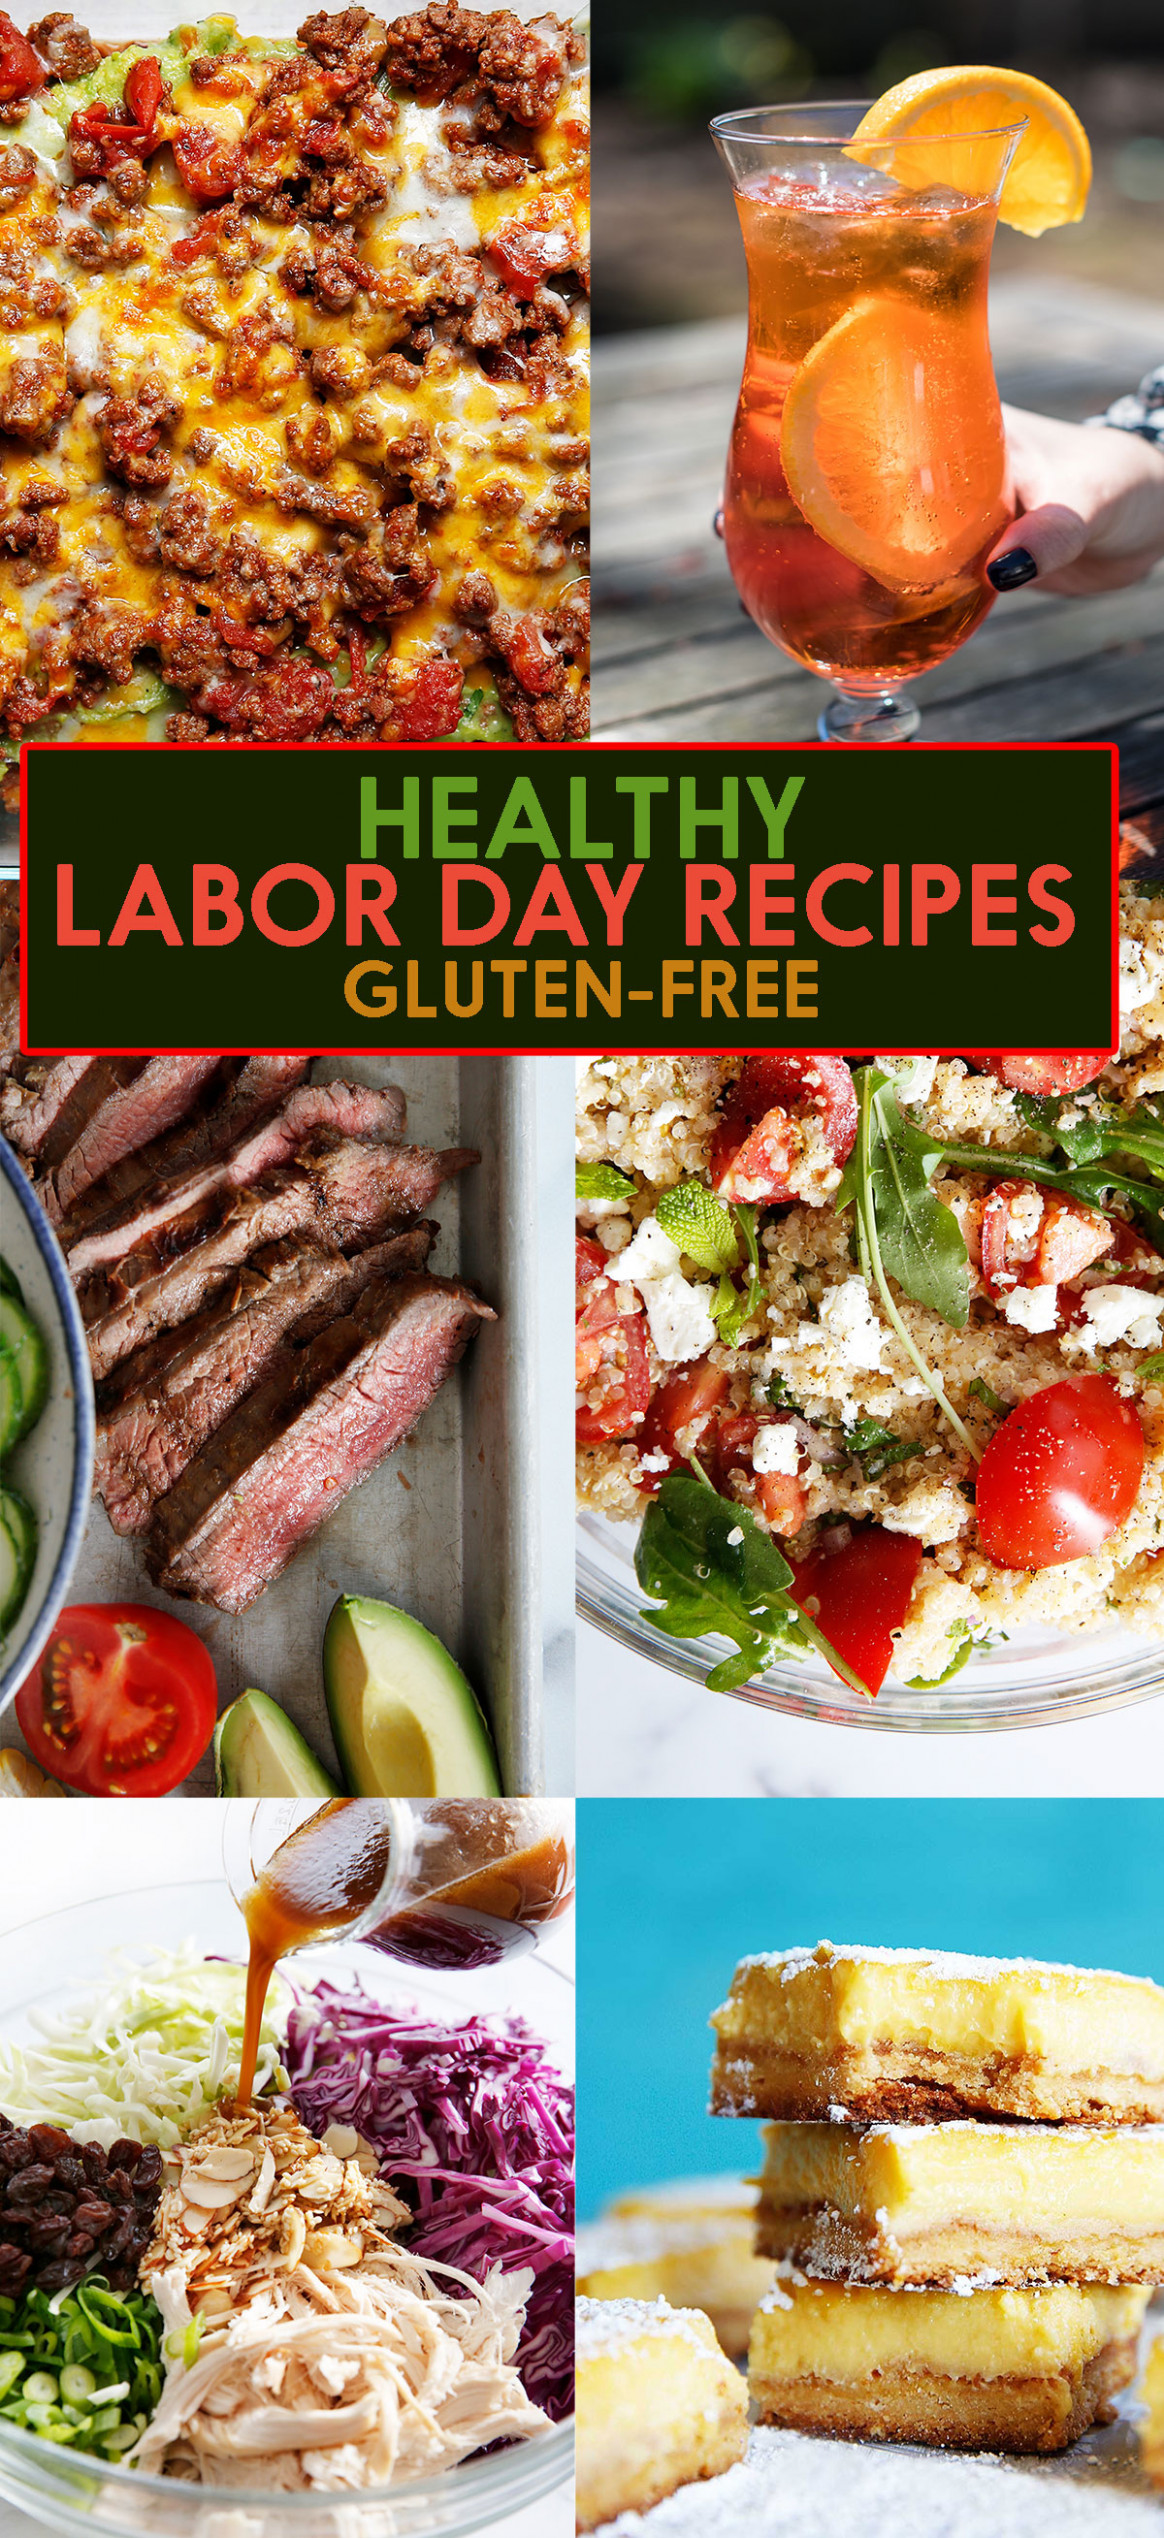 Healthy Labor Day Recipes - Lexi's Clean Kitchen - Healthy Gluten Free Recipes